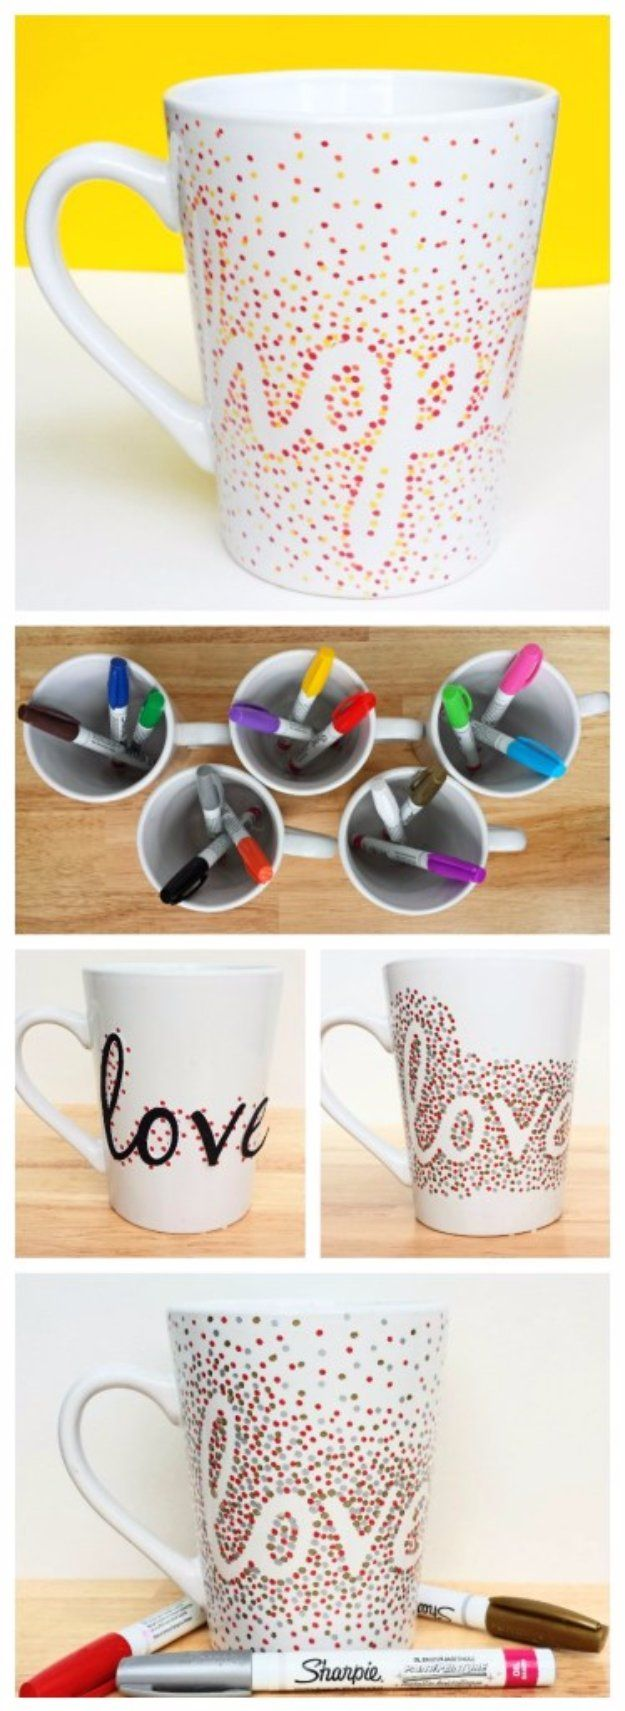 25+ best ideas about Diy craft projects on Pinterest | Craft gifts ...